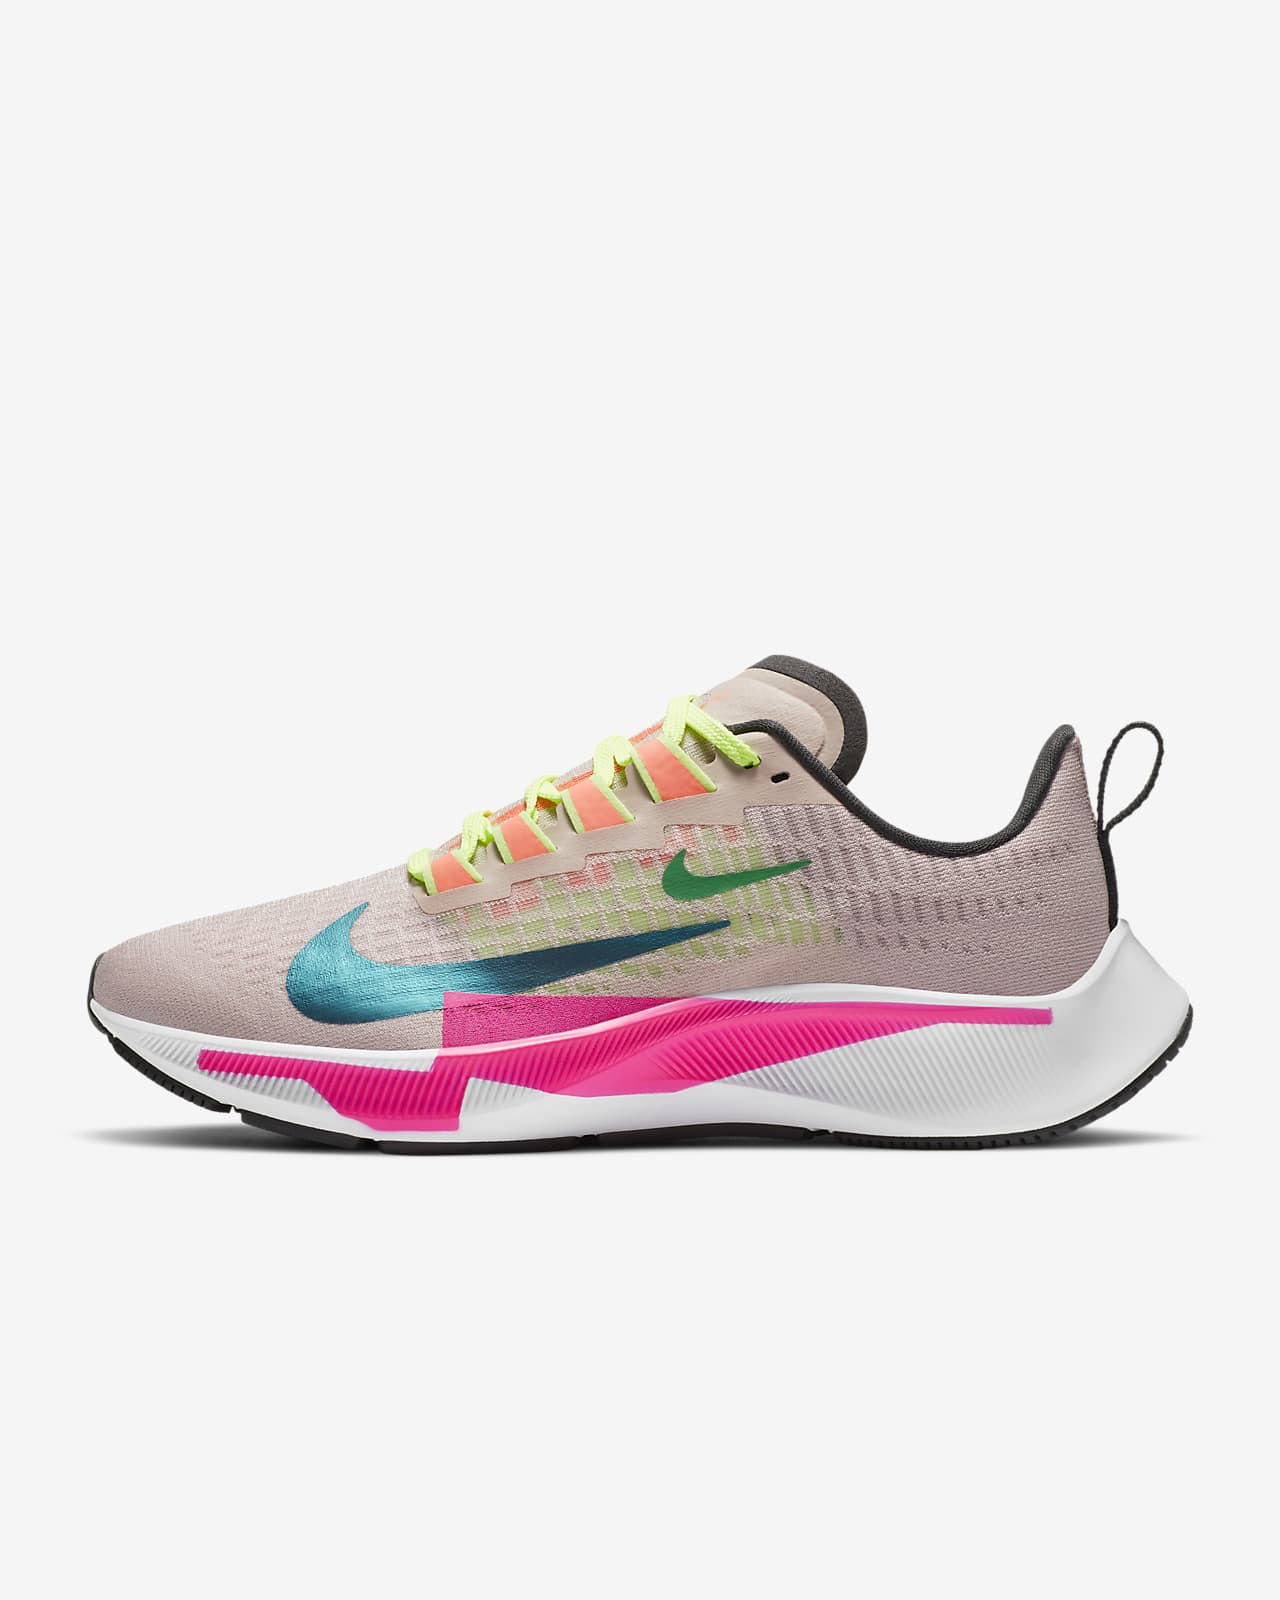 Nike Air Zoom Pegasus 37 Premium Women's Running Shoe